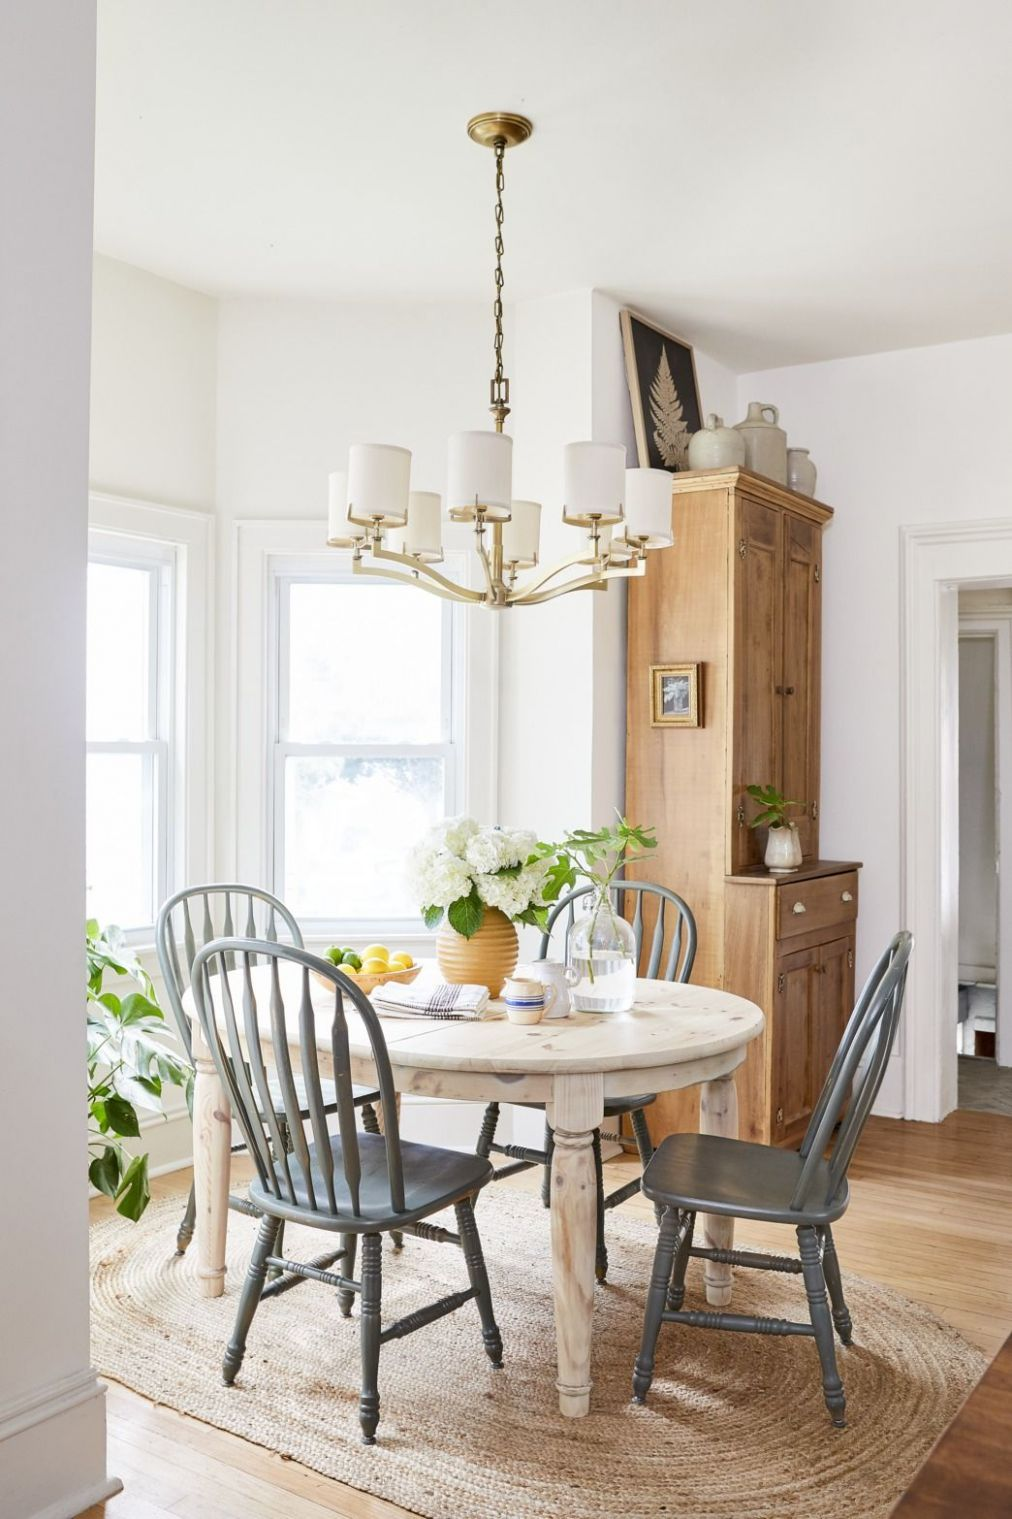 9 Best Dining Room Decorating Ideas - Country Dining Room Decor